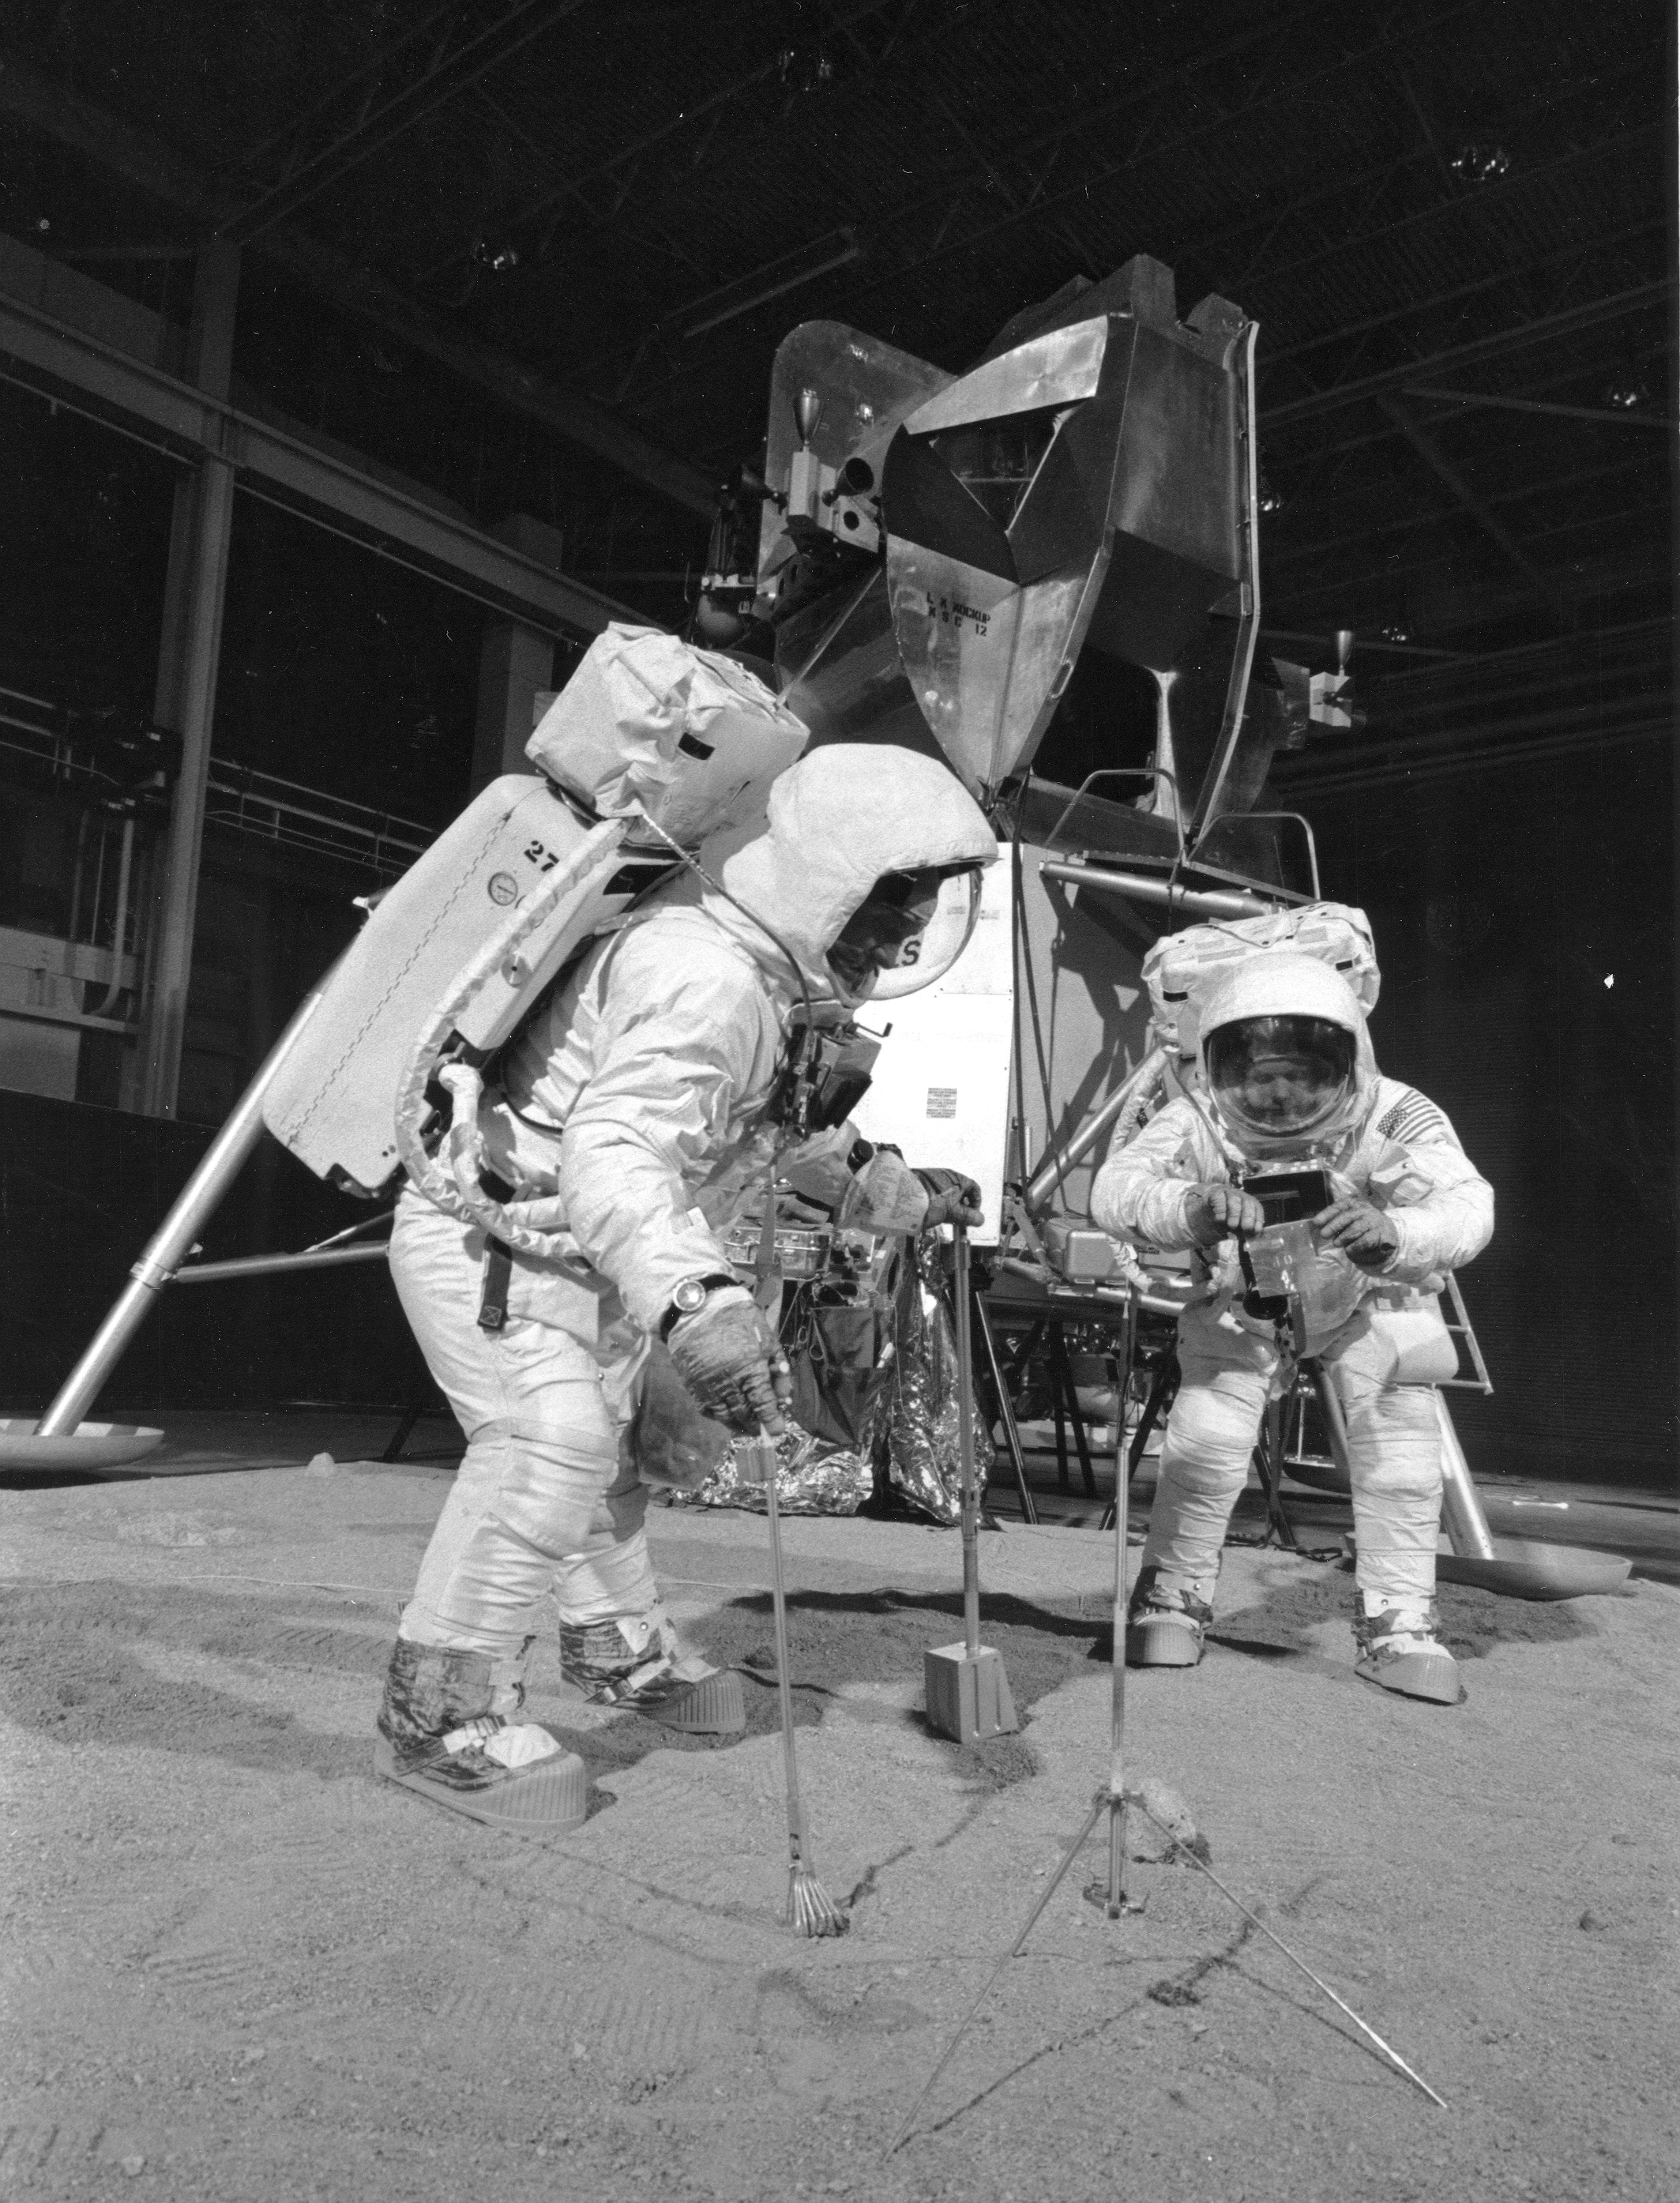 1969 Astronaut Buzz Aldrin plants U.S.flag on Moon Photo Apollo 11 Lunar Pilot